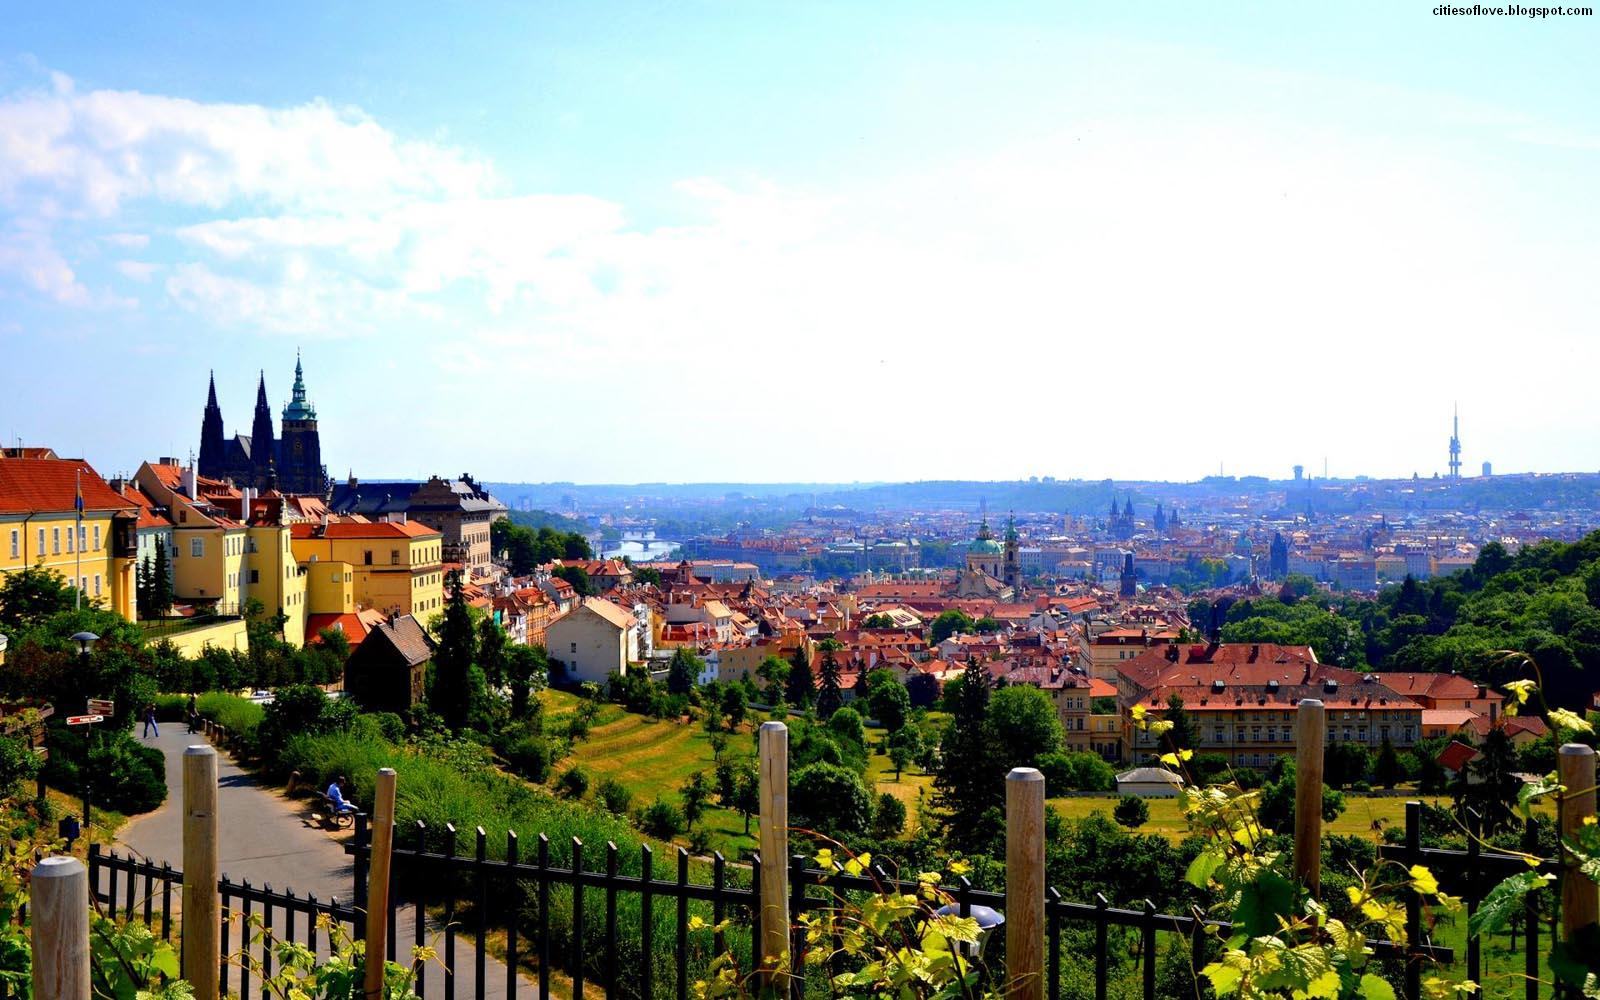 http://4.bp.blogspot.com/-b2J5WrM2IHg/UNdraNTf90I/AAAAAAAAJAo/g7JmDODE_EI/s1600/Prague_Beautiful_Paradise_Wonderful_Capital_City_Czech_Republic_Hd_Desktop_Wallpaper_citiesoflove.blogspot.com.jpg